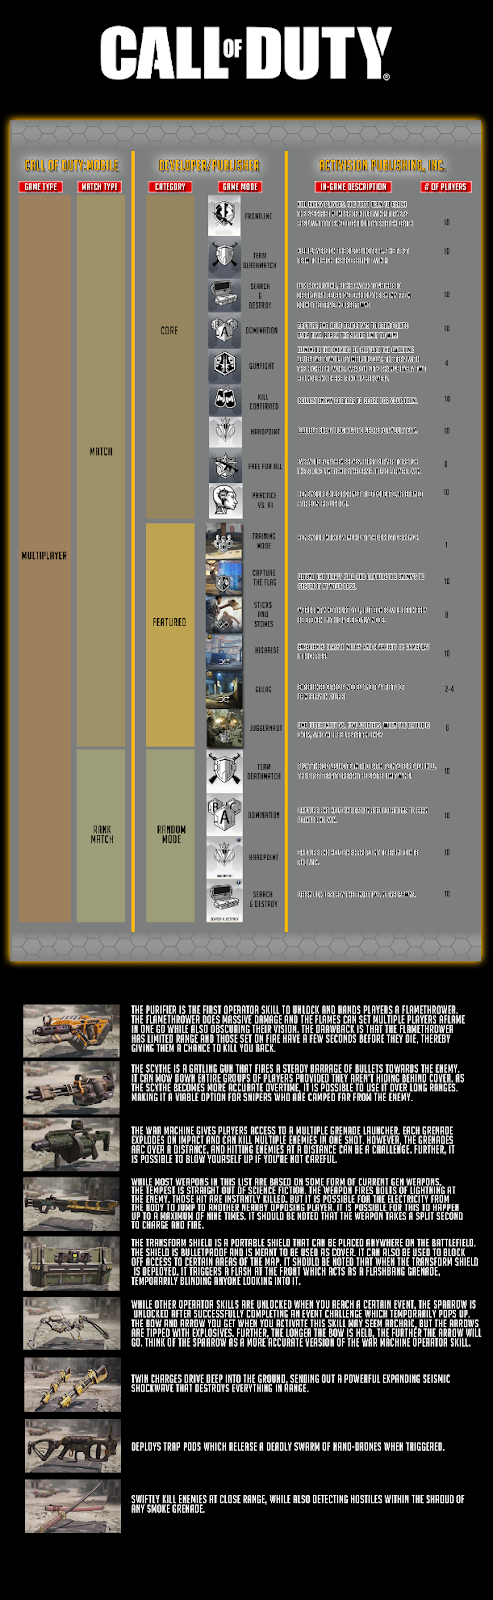 Call of Duty Guide